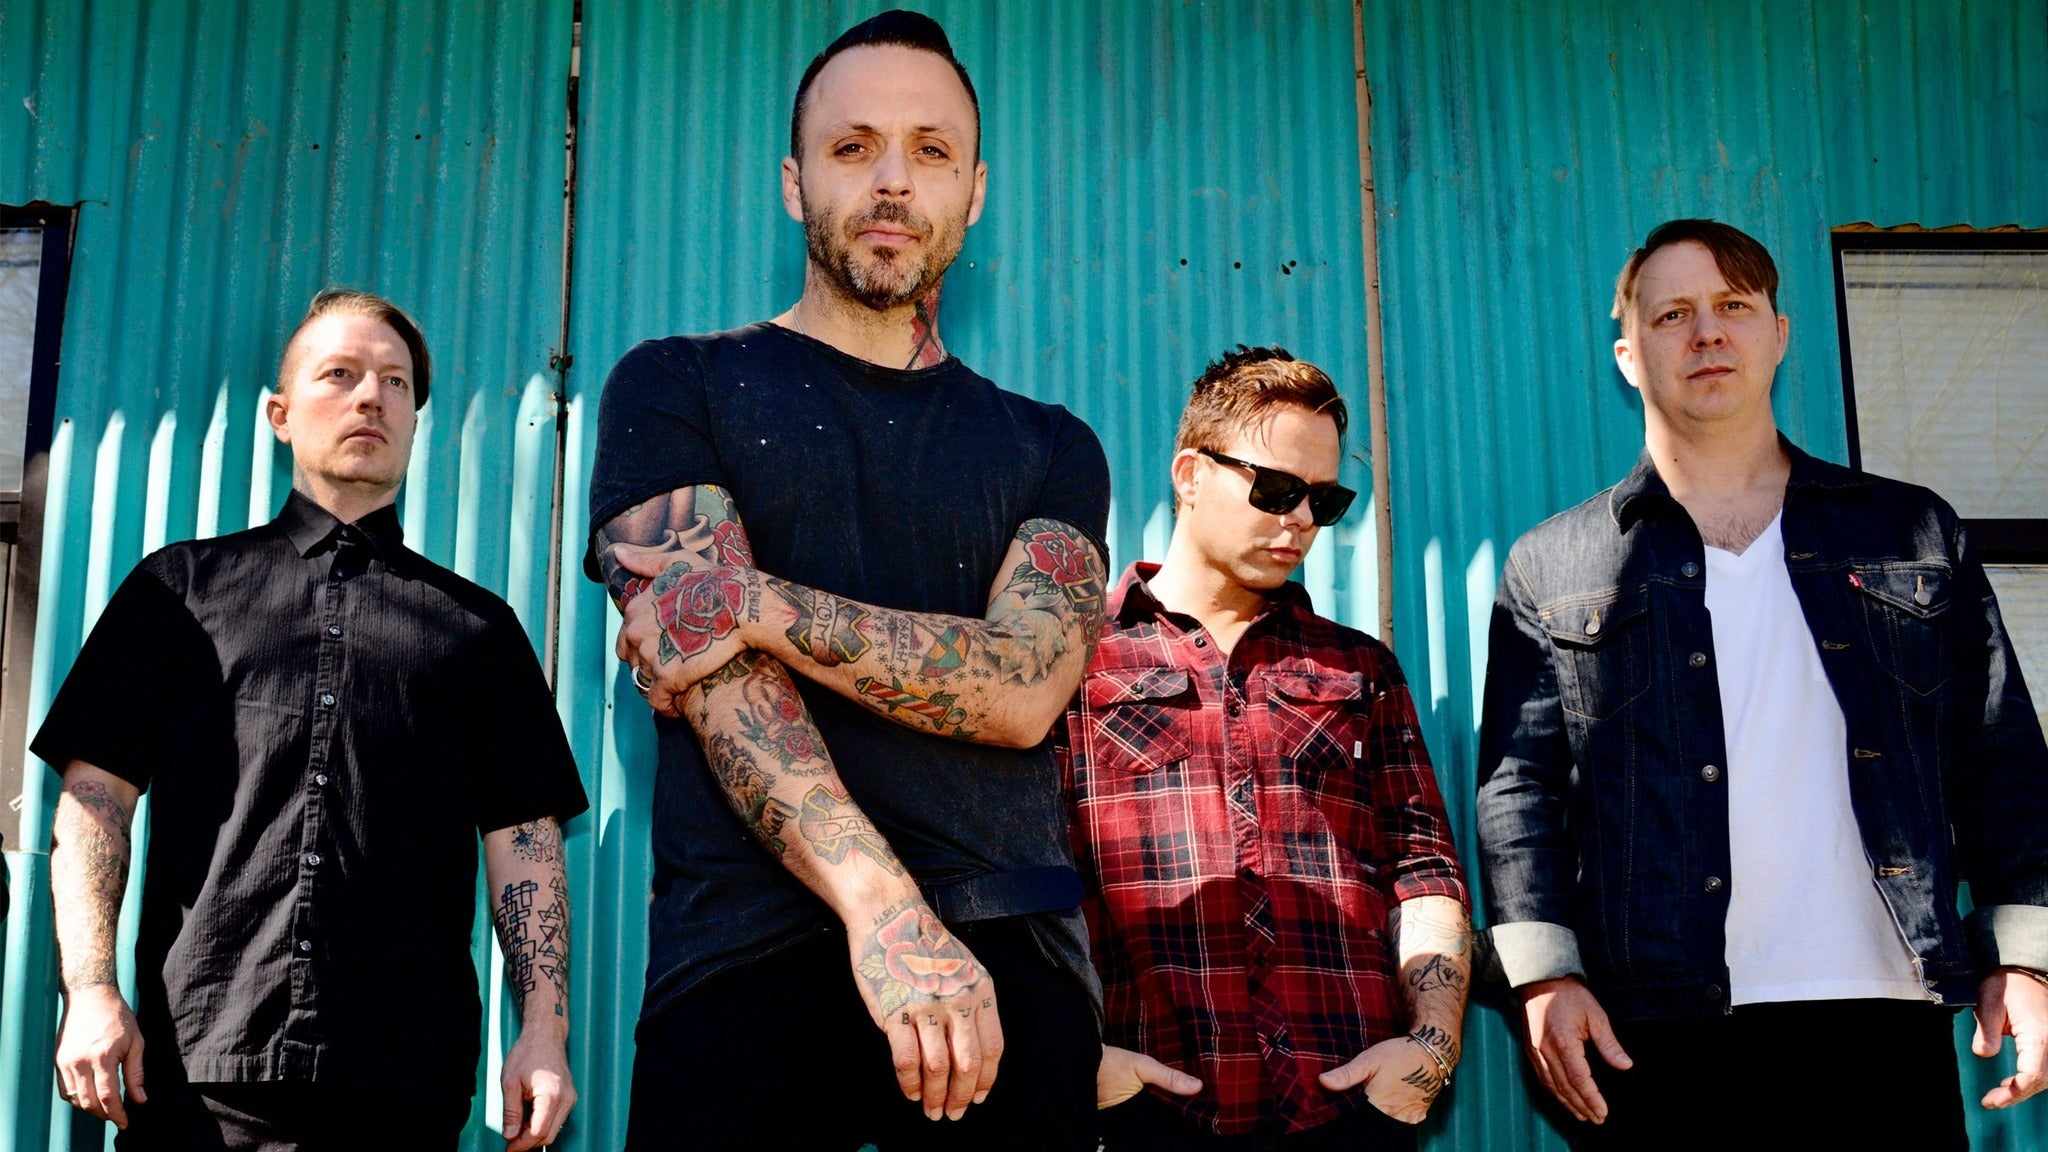 Blue October at Simon Estes Riverfront Amphitheater